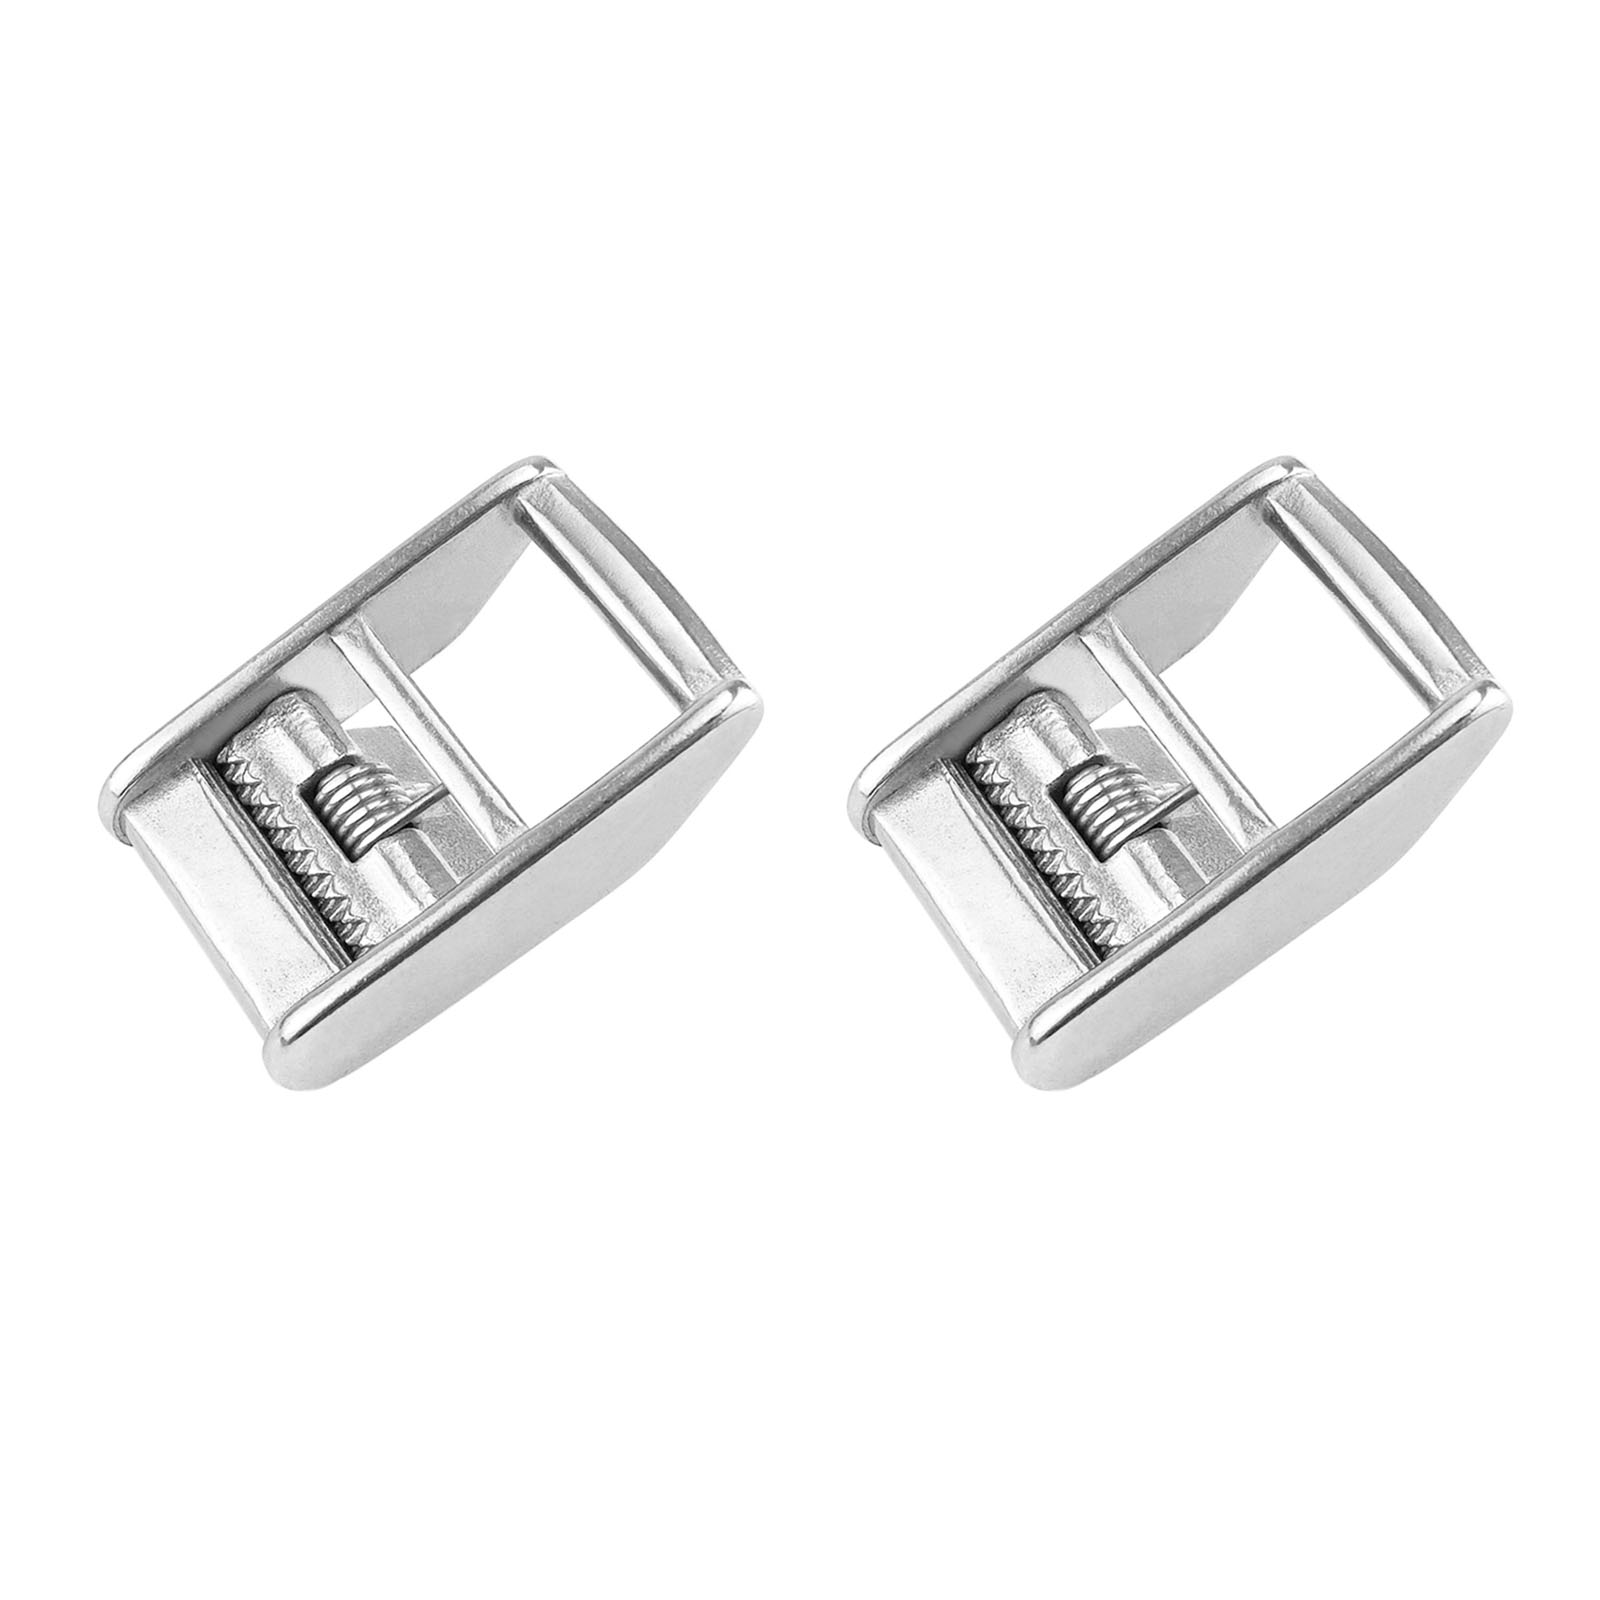 2Pcs Stainless Steel 316 Cam Buckle Ratchet Buckle For 1